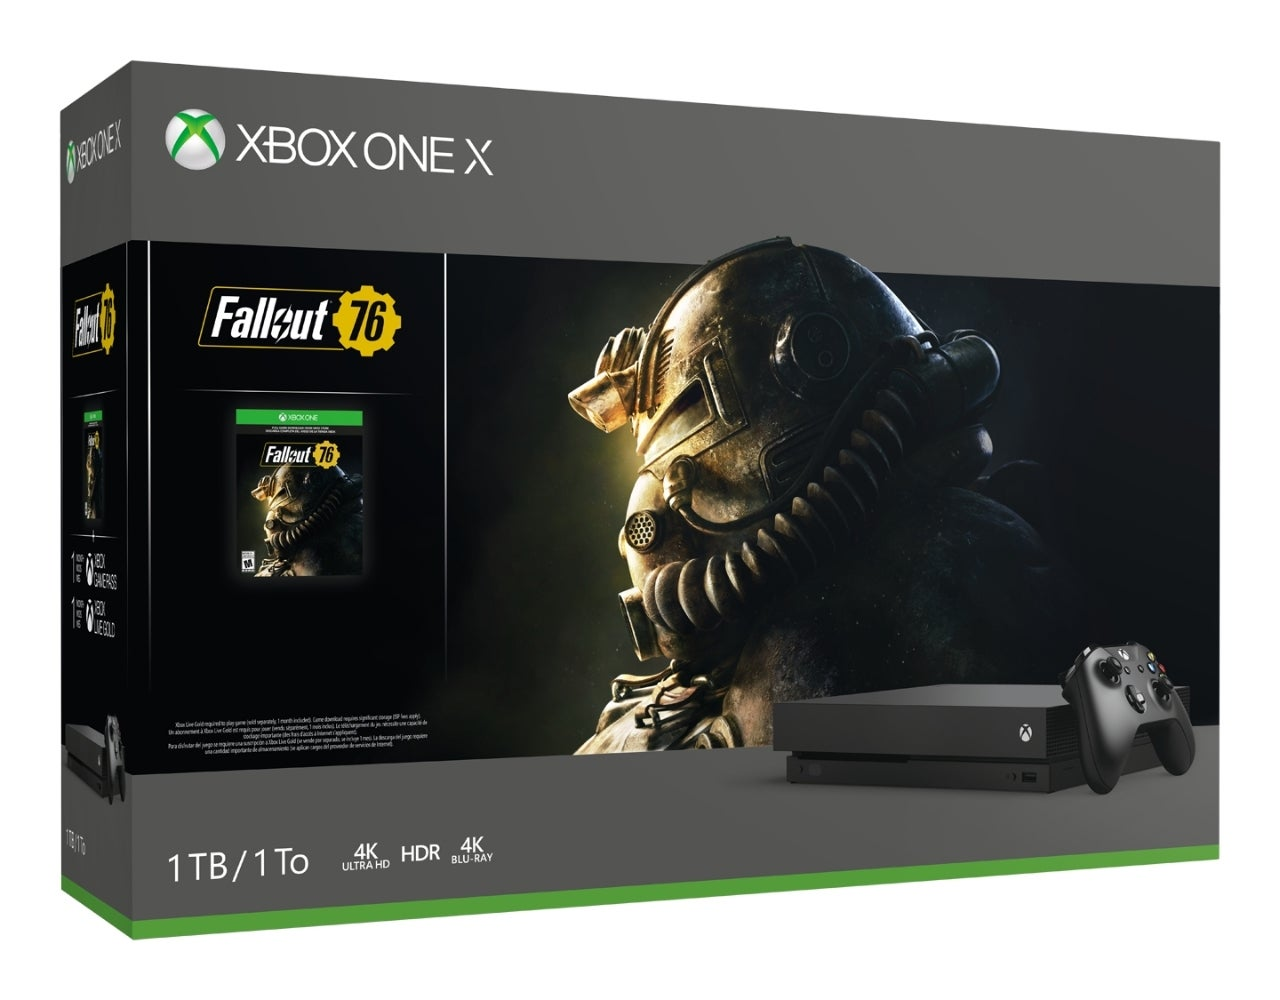 Xbox-One-X-Fallout-76-Bundle-Front-Angle-Box-Shot